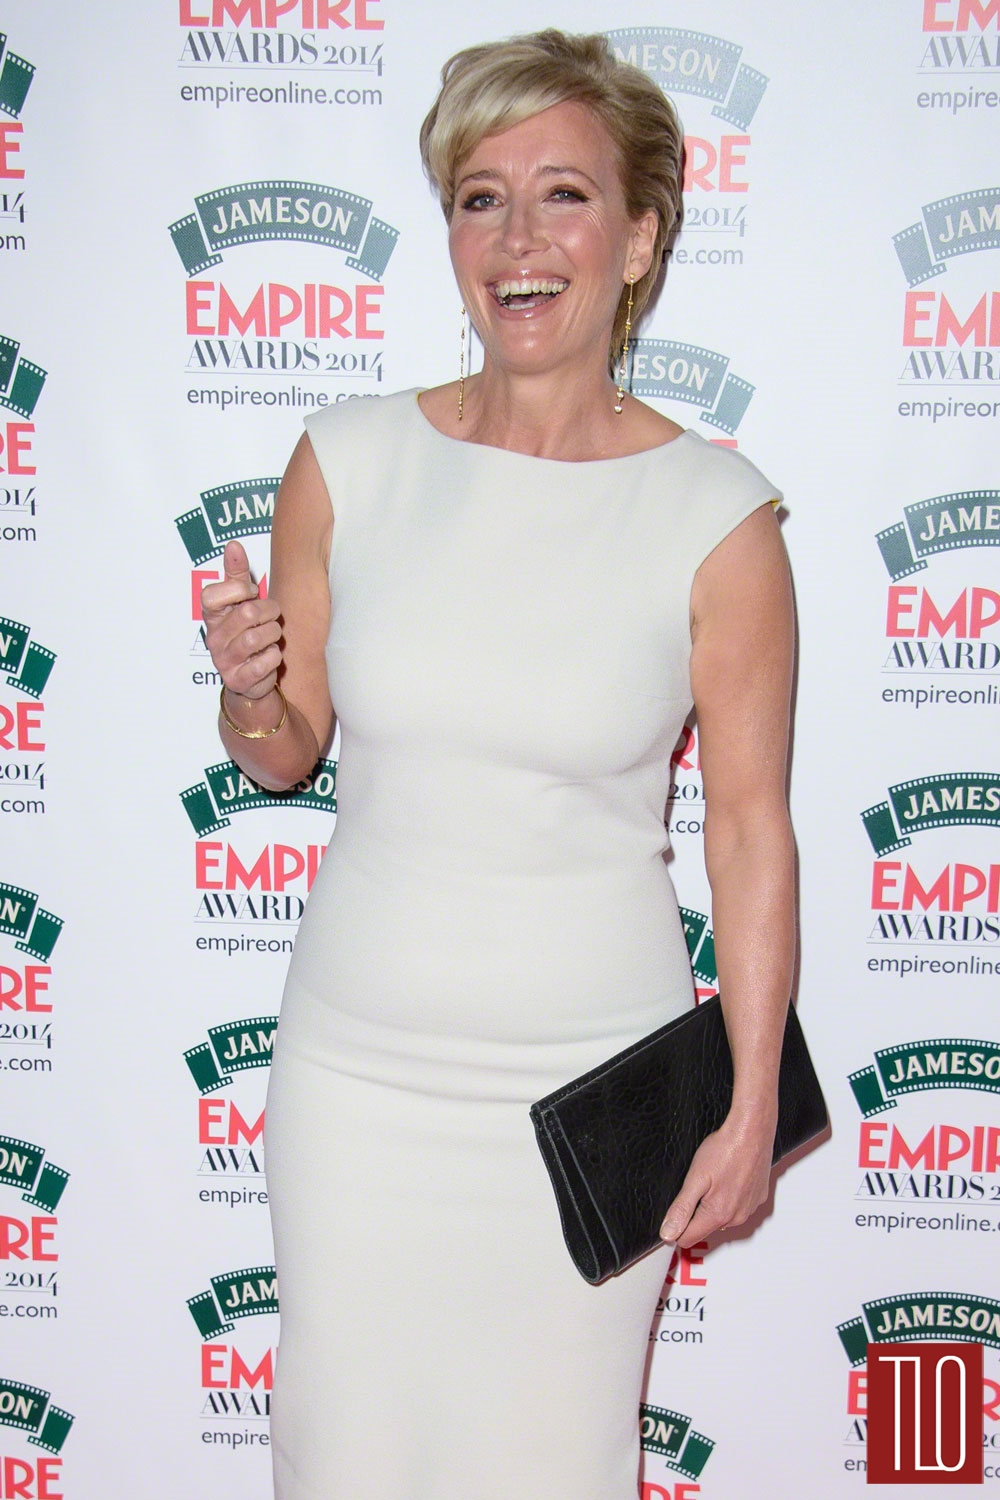 Emma-Thompson-Jameson-Empire-Awards-2014-Maria-Grachvogel-Tom-Lorenzo-Site-TLO (1)